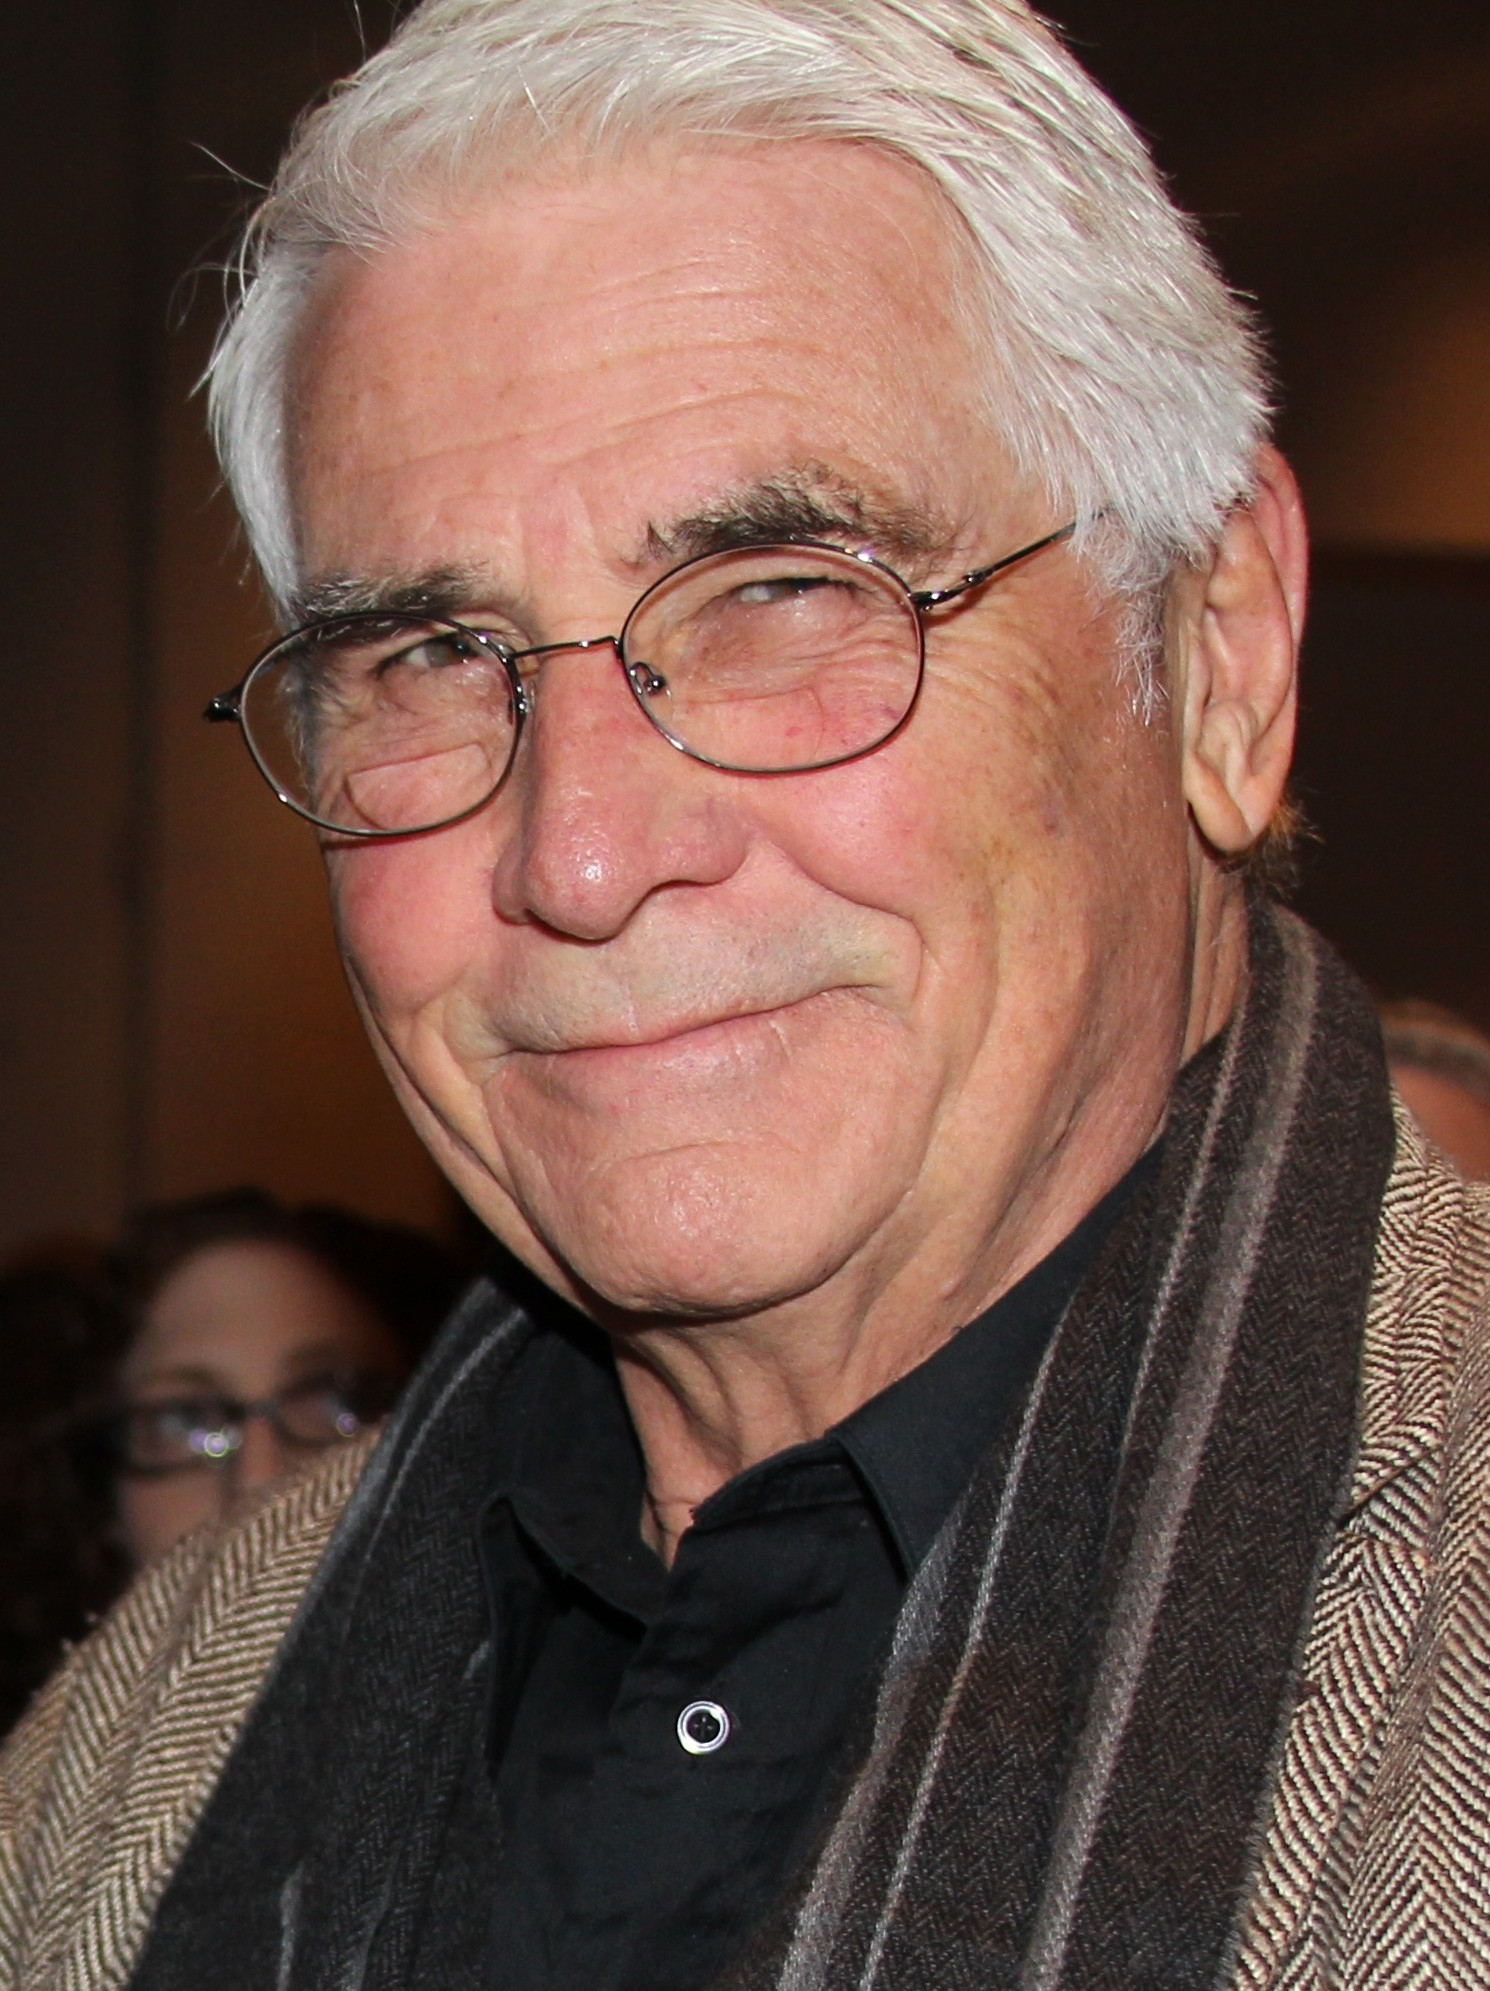 File:James Brolin 2013 (cropped).jpg - Wikimedia Commons